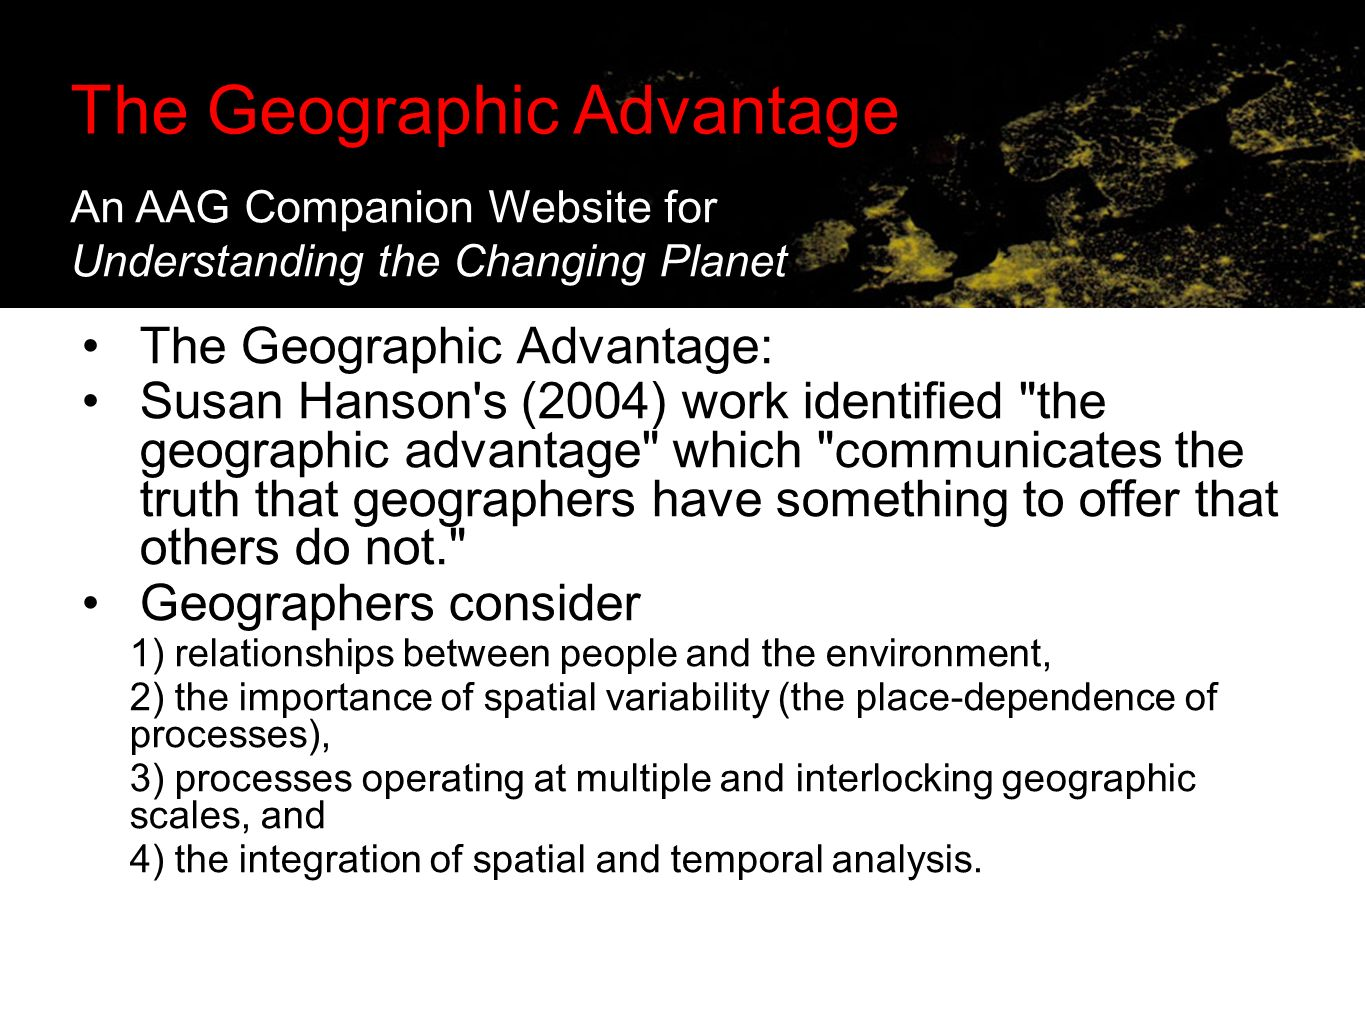 The Geographic Advantage: Supporting Online Investigations in the Classroom The Geographic Advantage: Susan Hanson s (2004) work identified the geographic advantage which communicates the truth that geographers have something to offer that others do not. Geographers consider 1) relationships between people and the environment, 2) the importance of spatial variability (the place-dependence of processes), 3) processes operating at multiple and interlocking geographic scales, and 4) the integration of spatial and temporal analysis.